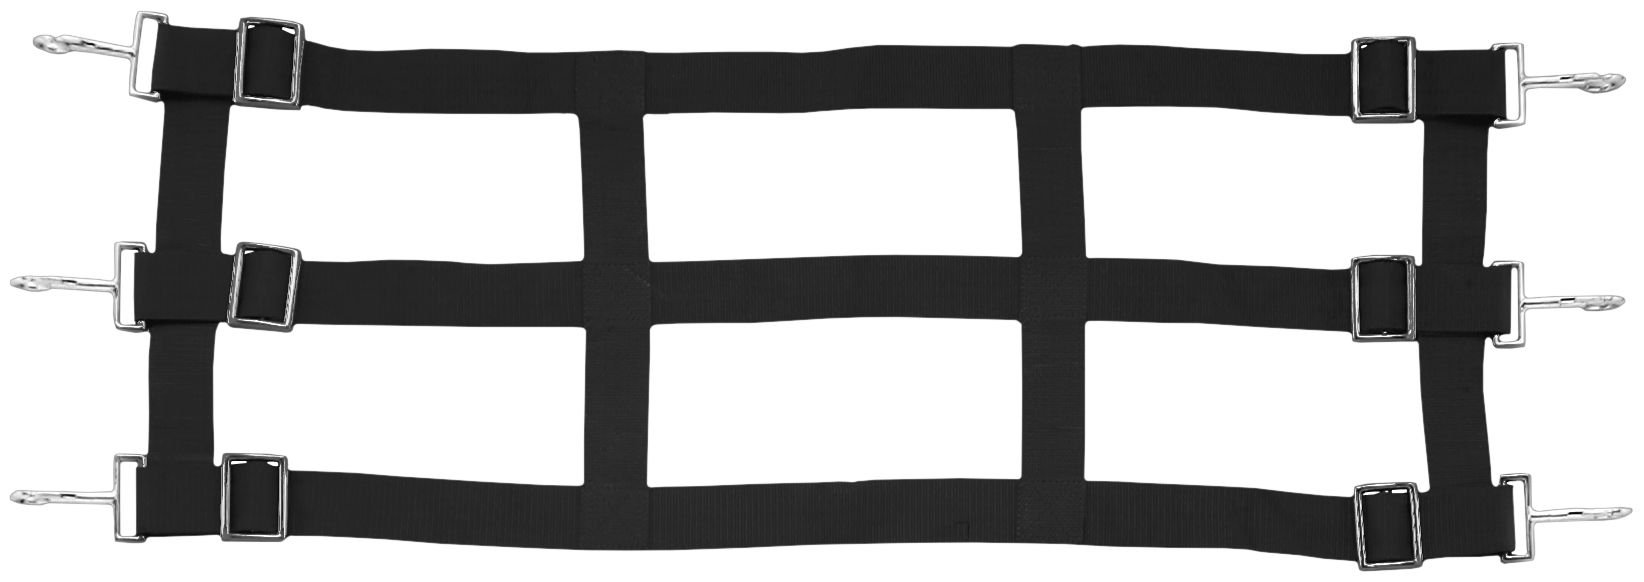 Tough 1 Nylon Stall Guard, Black by Tough 1